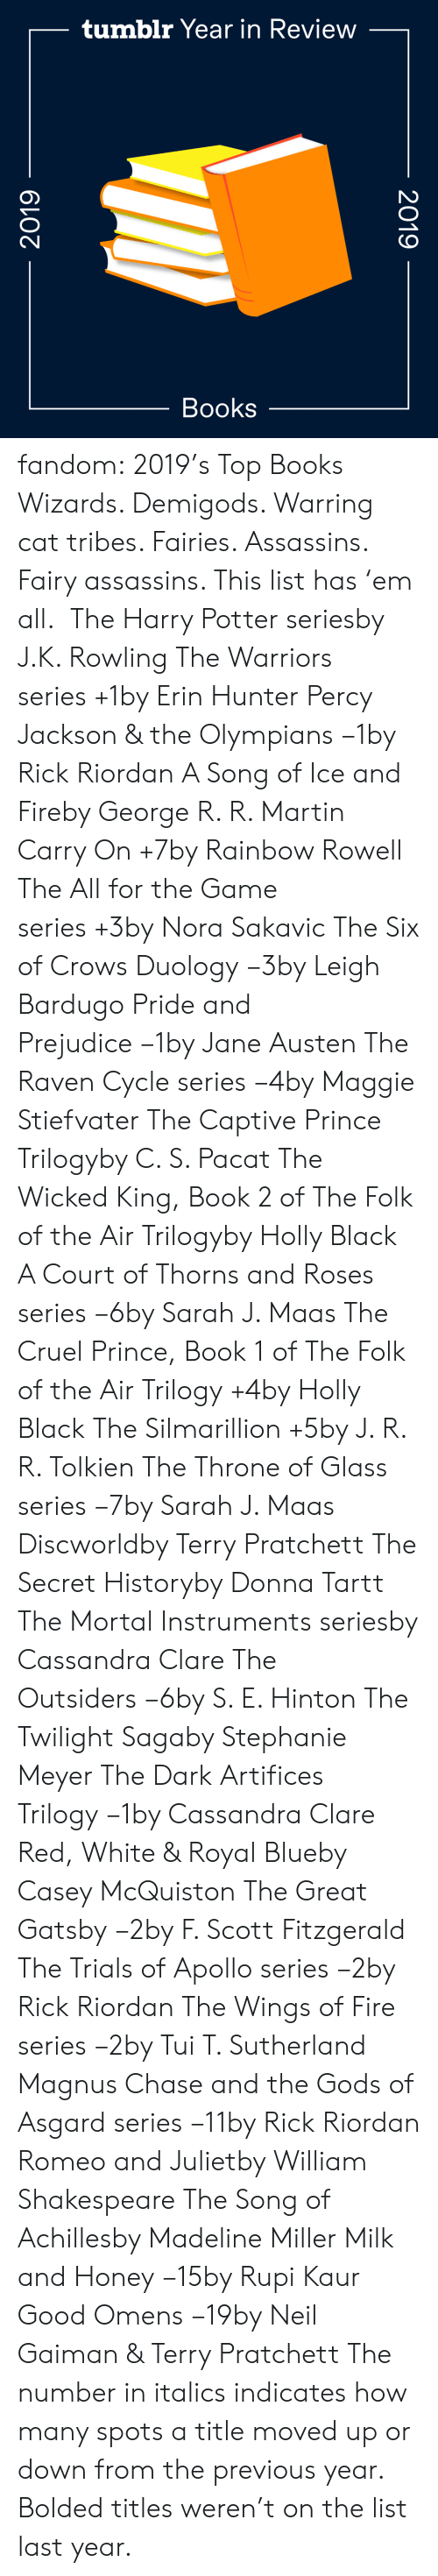 court: tumblr Year in Review  Books  2019  2019 fandom:  2019's Top Books  Wizards. Demigods. Warring cat tribes. Fairies. Assassins. Fairy assassins. This list has 'em all.   The Harry Potter seriesby J.K. Rowling  The Warriors series +1by Erin Hunter  Percy Jackson & the Olympians −1by Rick Riordan  A Song of Ice and Fireby George R. R. Martin  Carry On +7by Rainbow Rowell  The All for the Game series +3by Nora Sakavic  The Six of Crows Duology −3by Leigh Bardugo  Pride and Prejudice −1by Jane Austen  The Raven Cycle series −4by Maggie Stiefvater  The Captive Prince Trilogyby C. S. Pacat  The Wicked King, Book 2 of The Folk of the Air Trilogyby Holly Black  A Court of Thorns and Roses series −6by Sarah J. Maas  The Cruel Prince, Book 1 of The Folk of the Air Trilogy +4by Holly Black  The Silmarillion +5by J. R. R. Tolkien  The Throne of Glass series −7by Sarah J. Maas  Discworldby Terry Pratchett  The Secret Historyby Donna Tartt  The Mortal Instruments seriesby Cassandra Clare  The Outsiders −6by S. E. Hinton  The Twilight Sagaby Stephanie Meyer  The Dark Artifices Trilogy −1by Cassandra Clare  Red, White & Royal Blueby Casey McQuiston  The Great Gatsby −2by F. Scott Fitzgerald  The Trials of Apollo series −2by Rick Riordan  The Wings of Fire series −2by Tui T. Sutherland  Magnus Chase and the Gods of Asgard series −11by Rick Riordan  Romeo and Julietby William Shakespeare  The Song of Achillesby Madeline Miller  Milk and Honey −15by Rupi Kaur  Good Omens −19by Neil Gaiman & Terry Pratchett The number in italics indicates how many spots a title moved up or down from the previous year. Bolded titles weren't on the list last year.